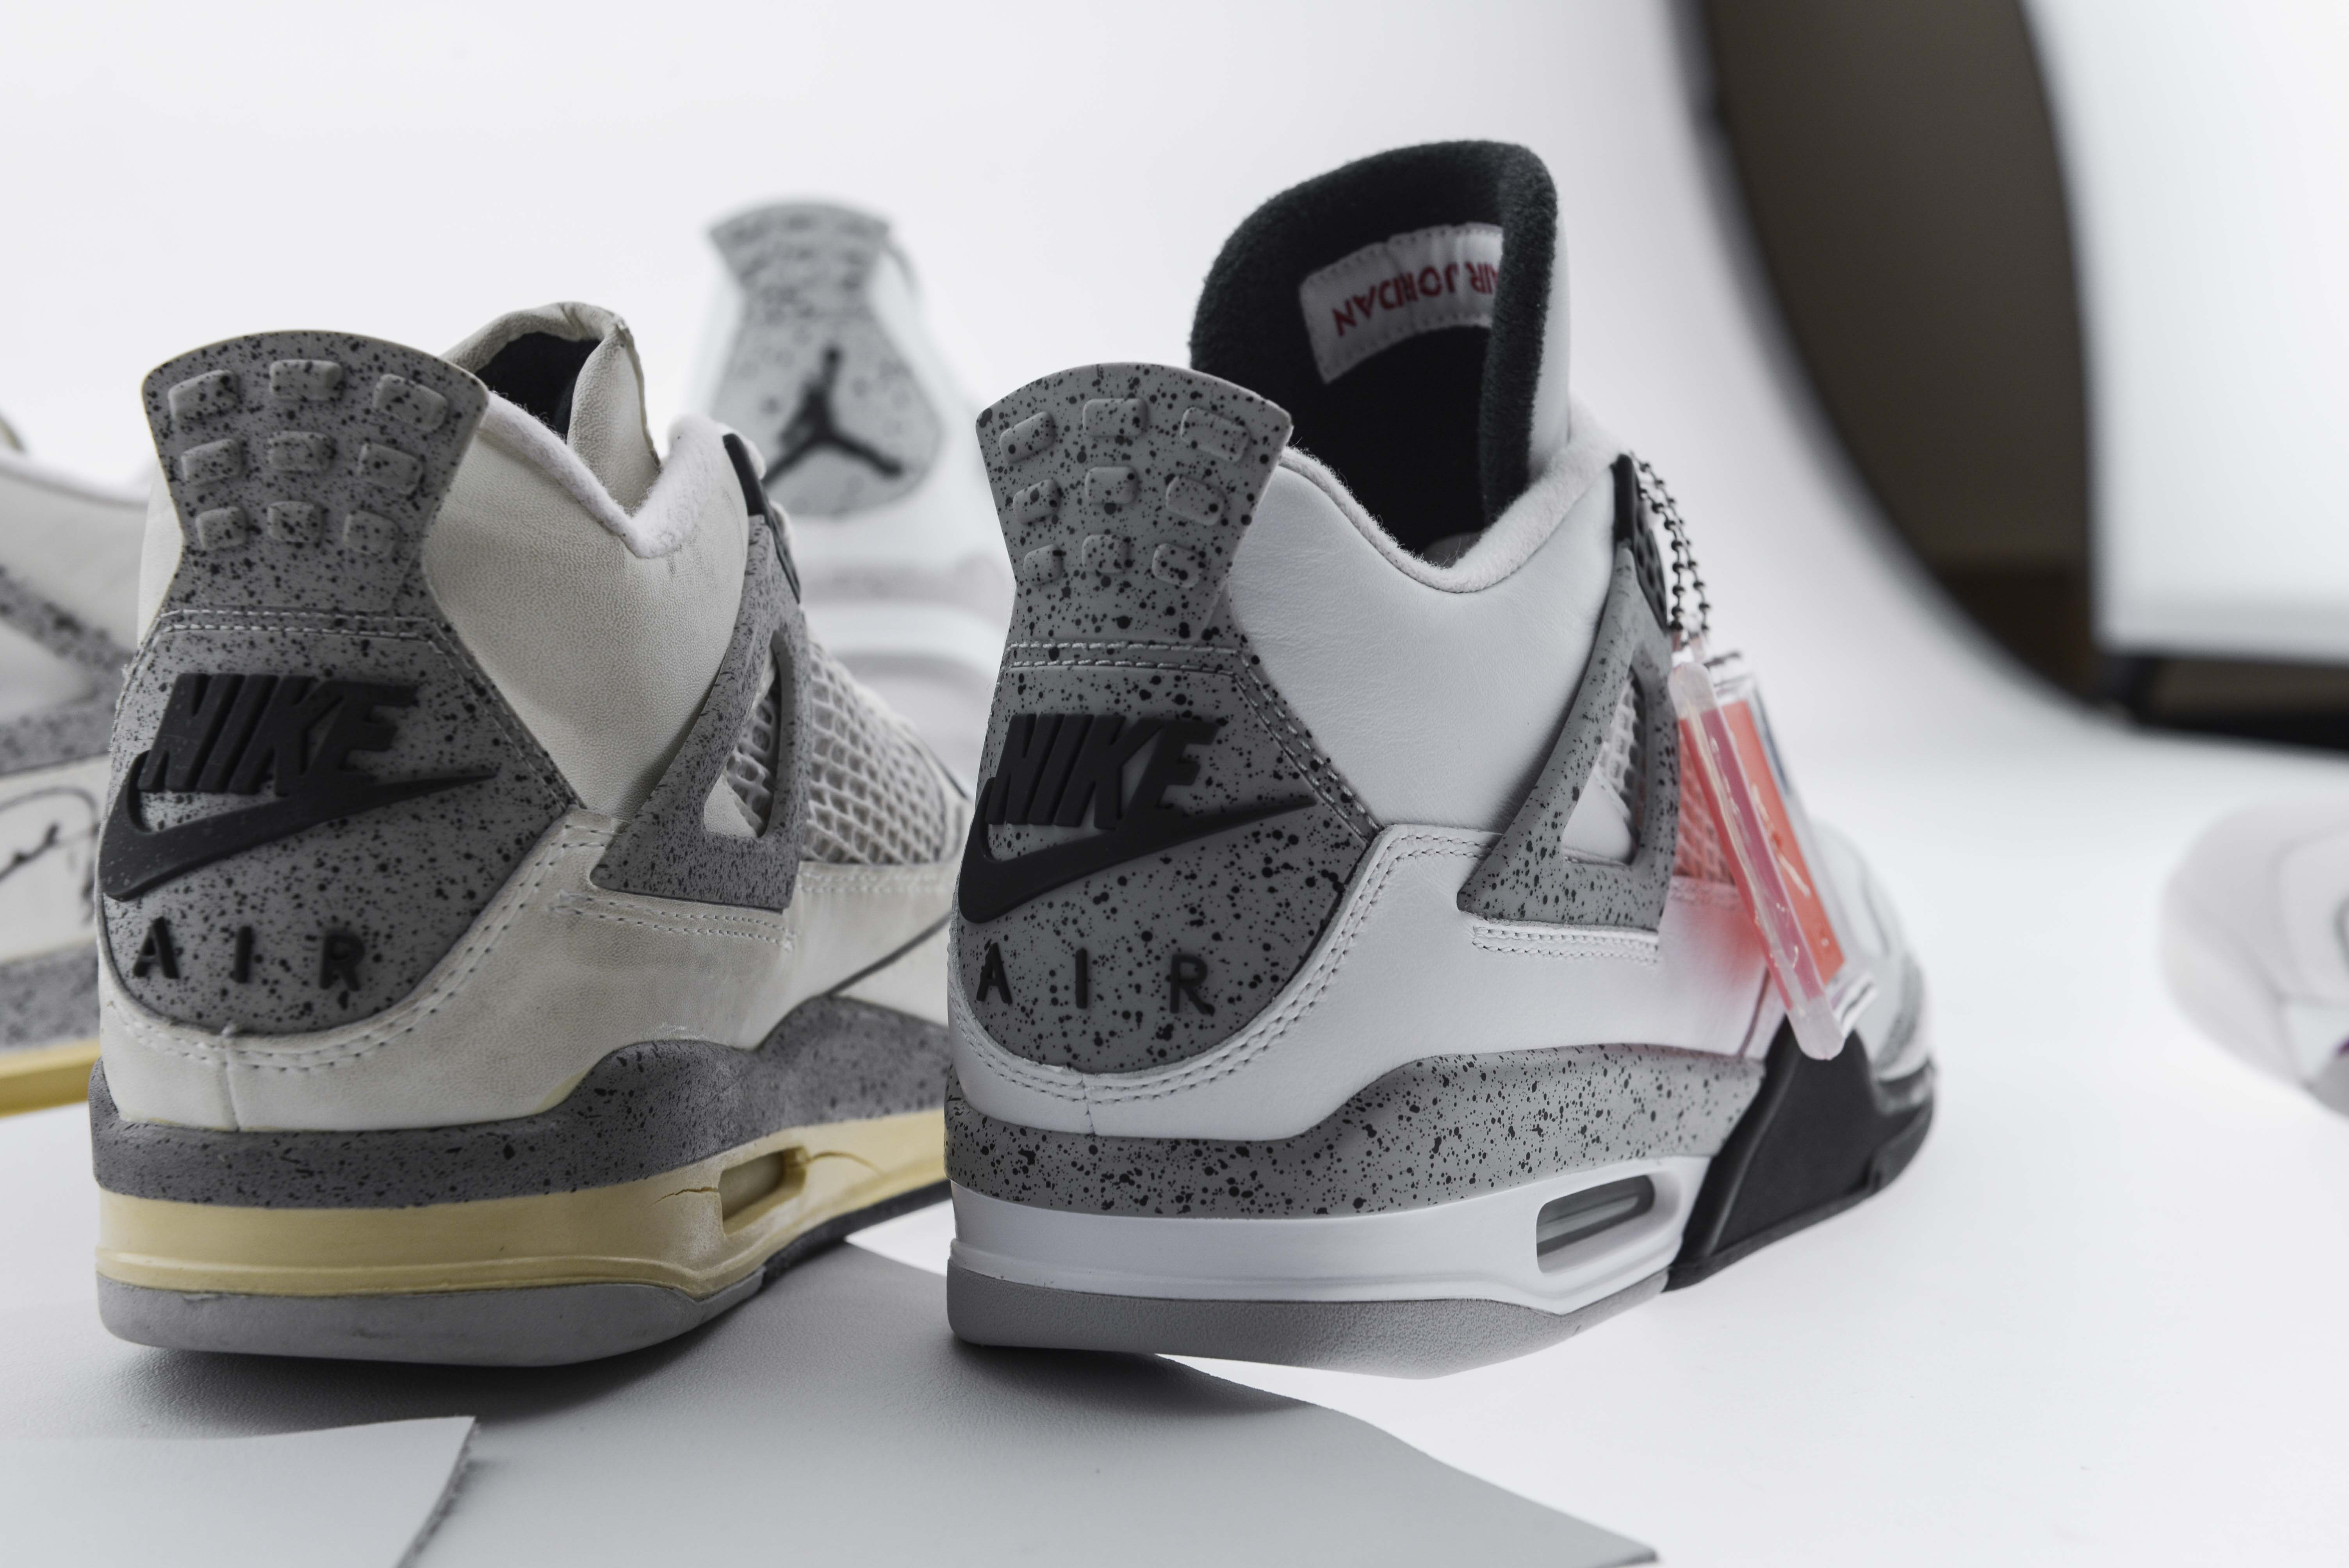 Air Jordan 4 Ciment Blanc De 2015 Chevy Finishline sortie IkwEHzW3F